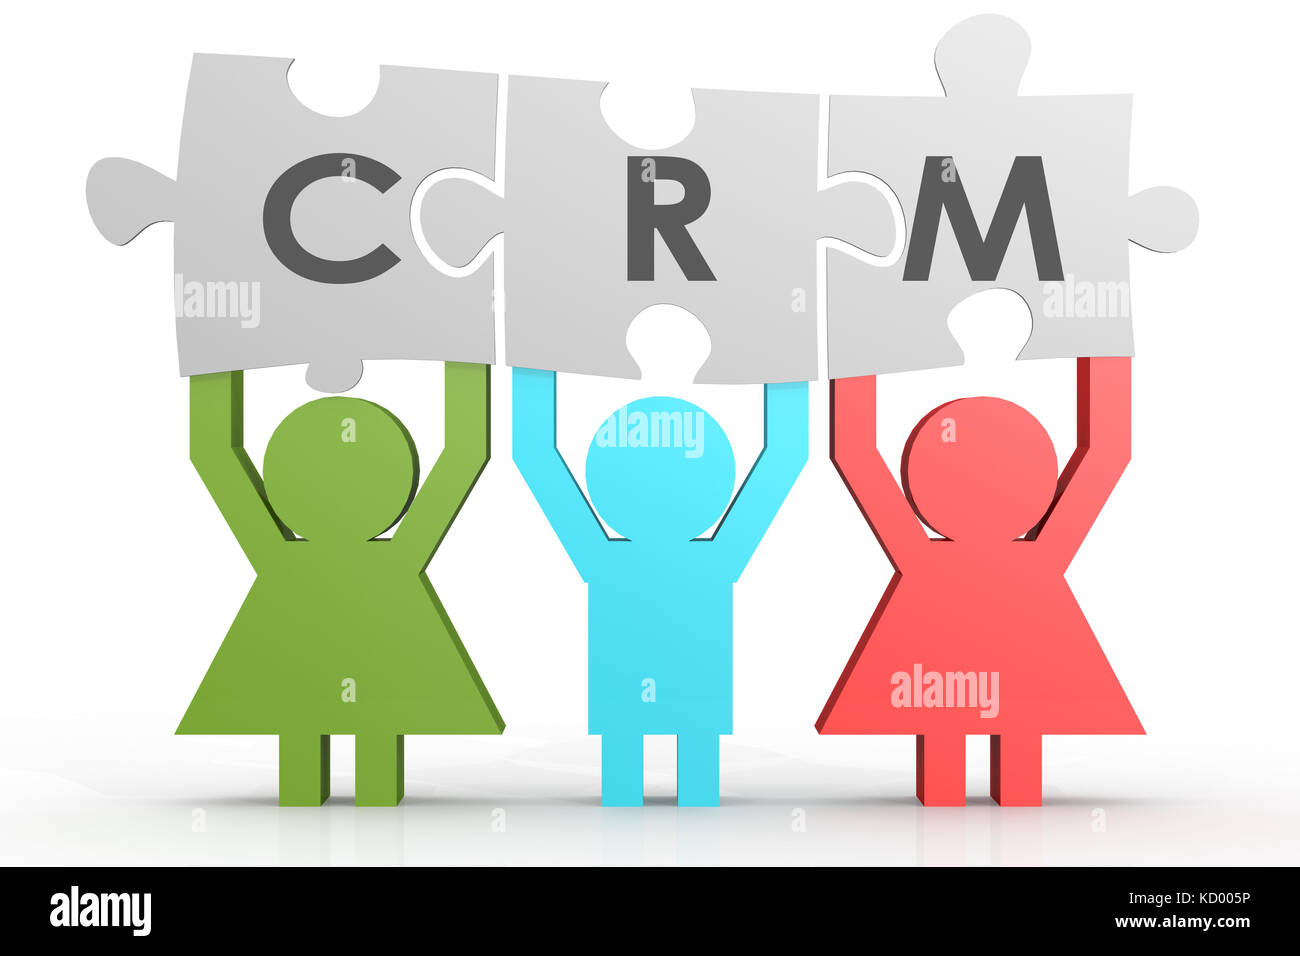 CRM - Customer Relationship Management puzzle in a line image with hi-res rendered artwork that could be used for - Stock Image